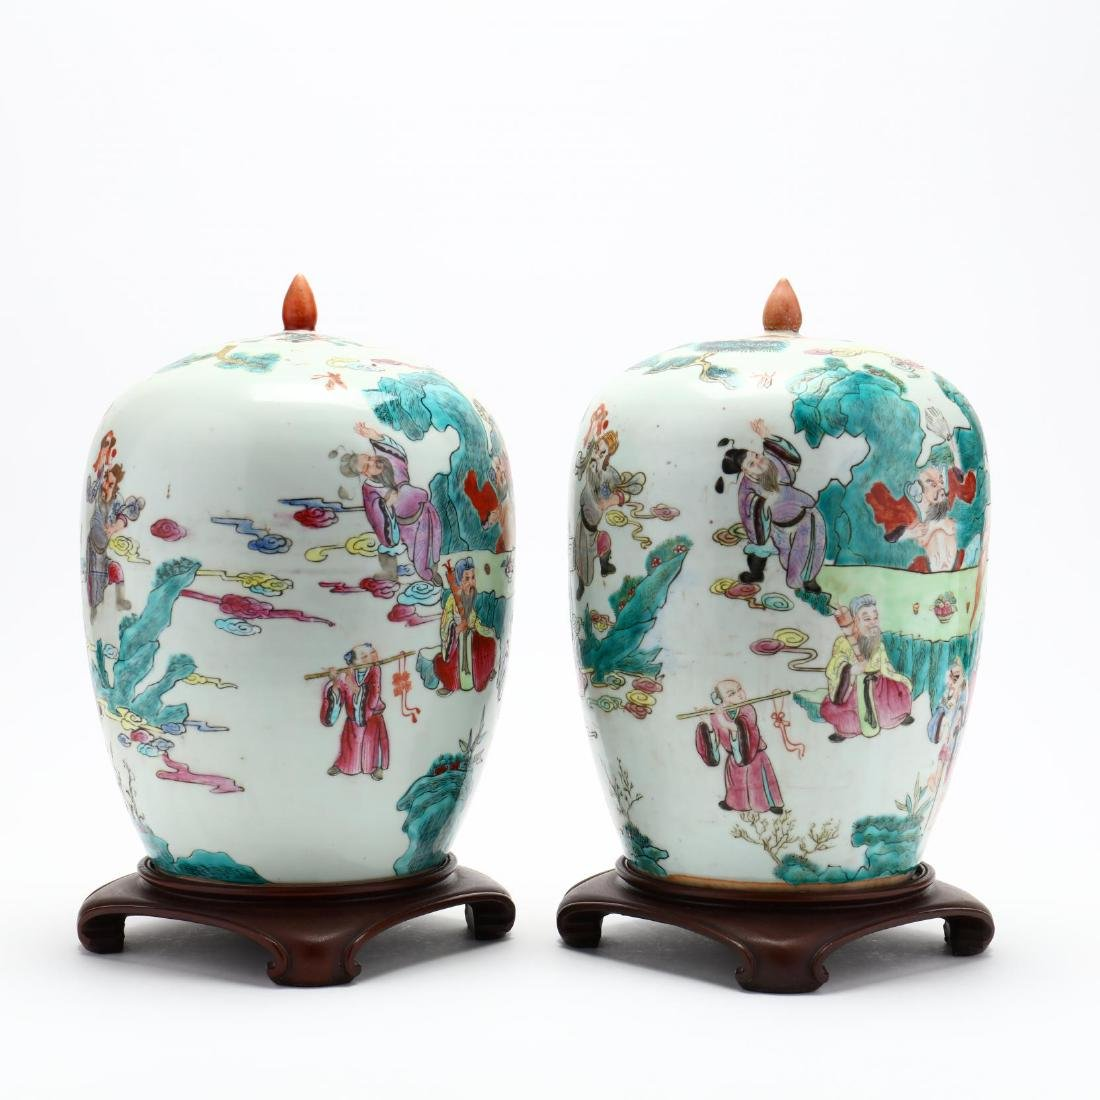 Pair of Chinese Export Porcelain Lidded Jars - 2